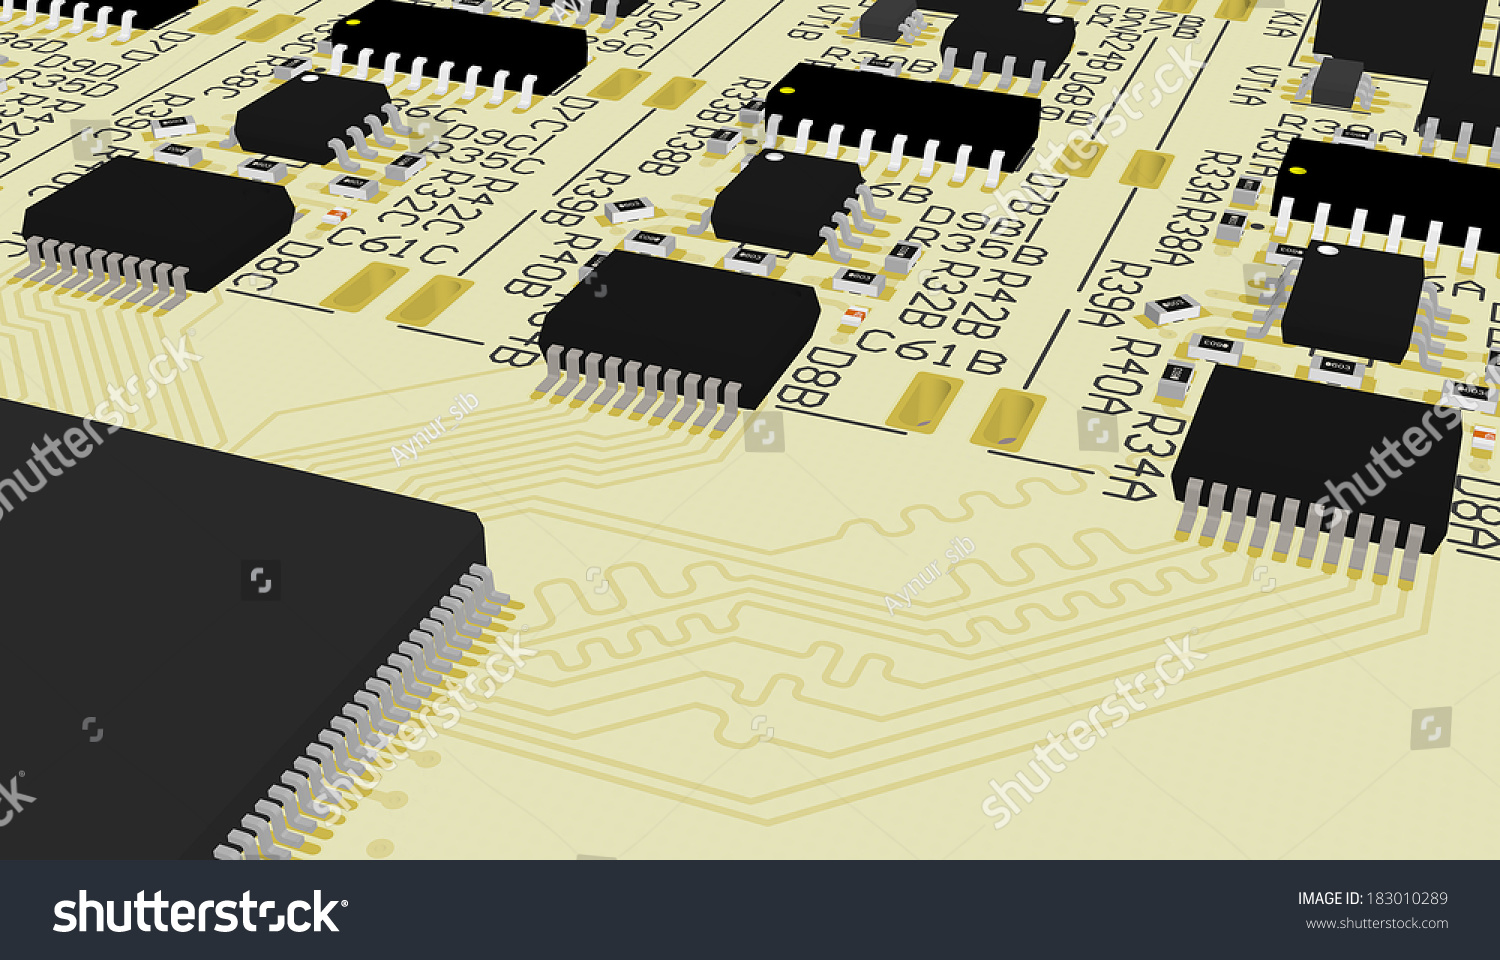 Royalty Free Stock Illustration Of Pcb Device Design Wiring The Printedcircuitboard 3d Photography Schemeprinted Circuit Board Cad Designed For Computer Production Manufacturing Printing